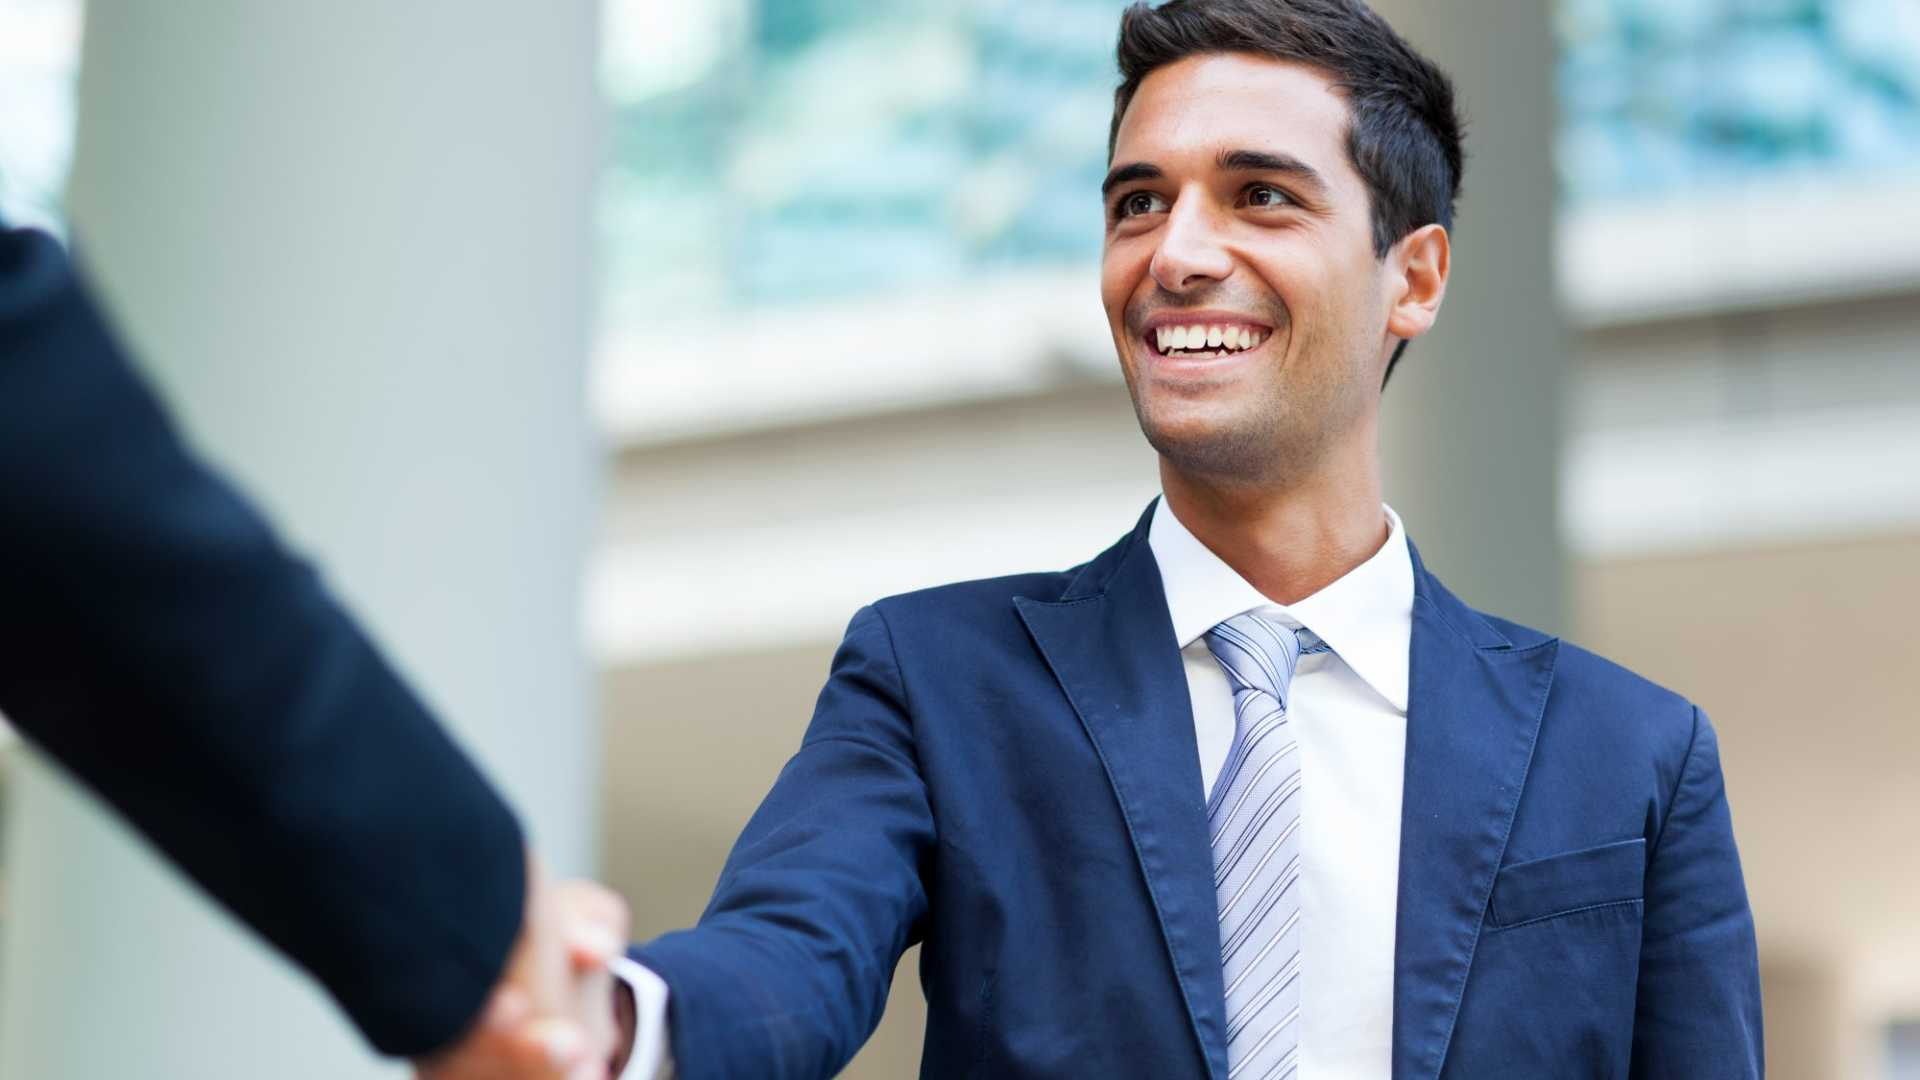 Starting a New Job? Do These 3 Things on Your First Day to Start Right